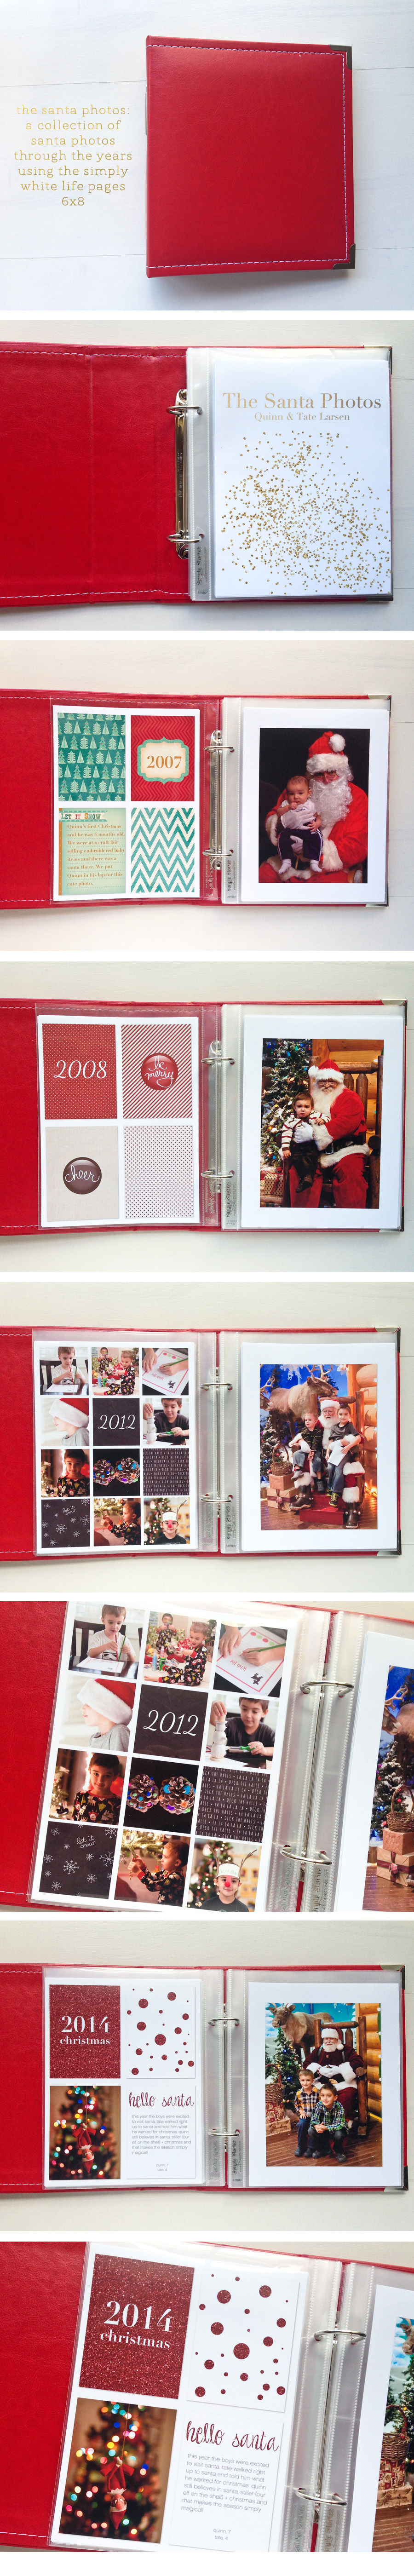 the santa photos - simply white life pages 6x8 templates - digital project life ==> tracy-larsen.com/blog/shop